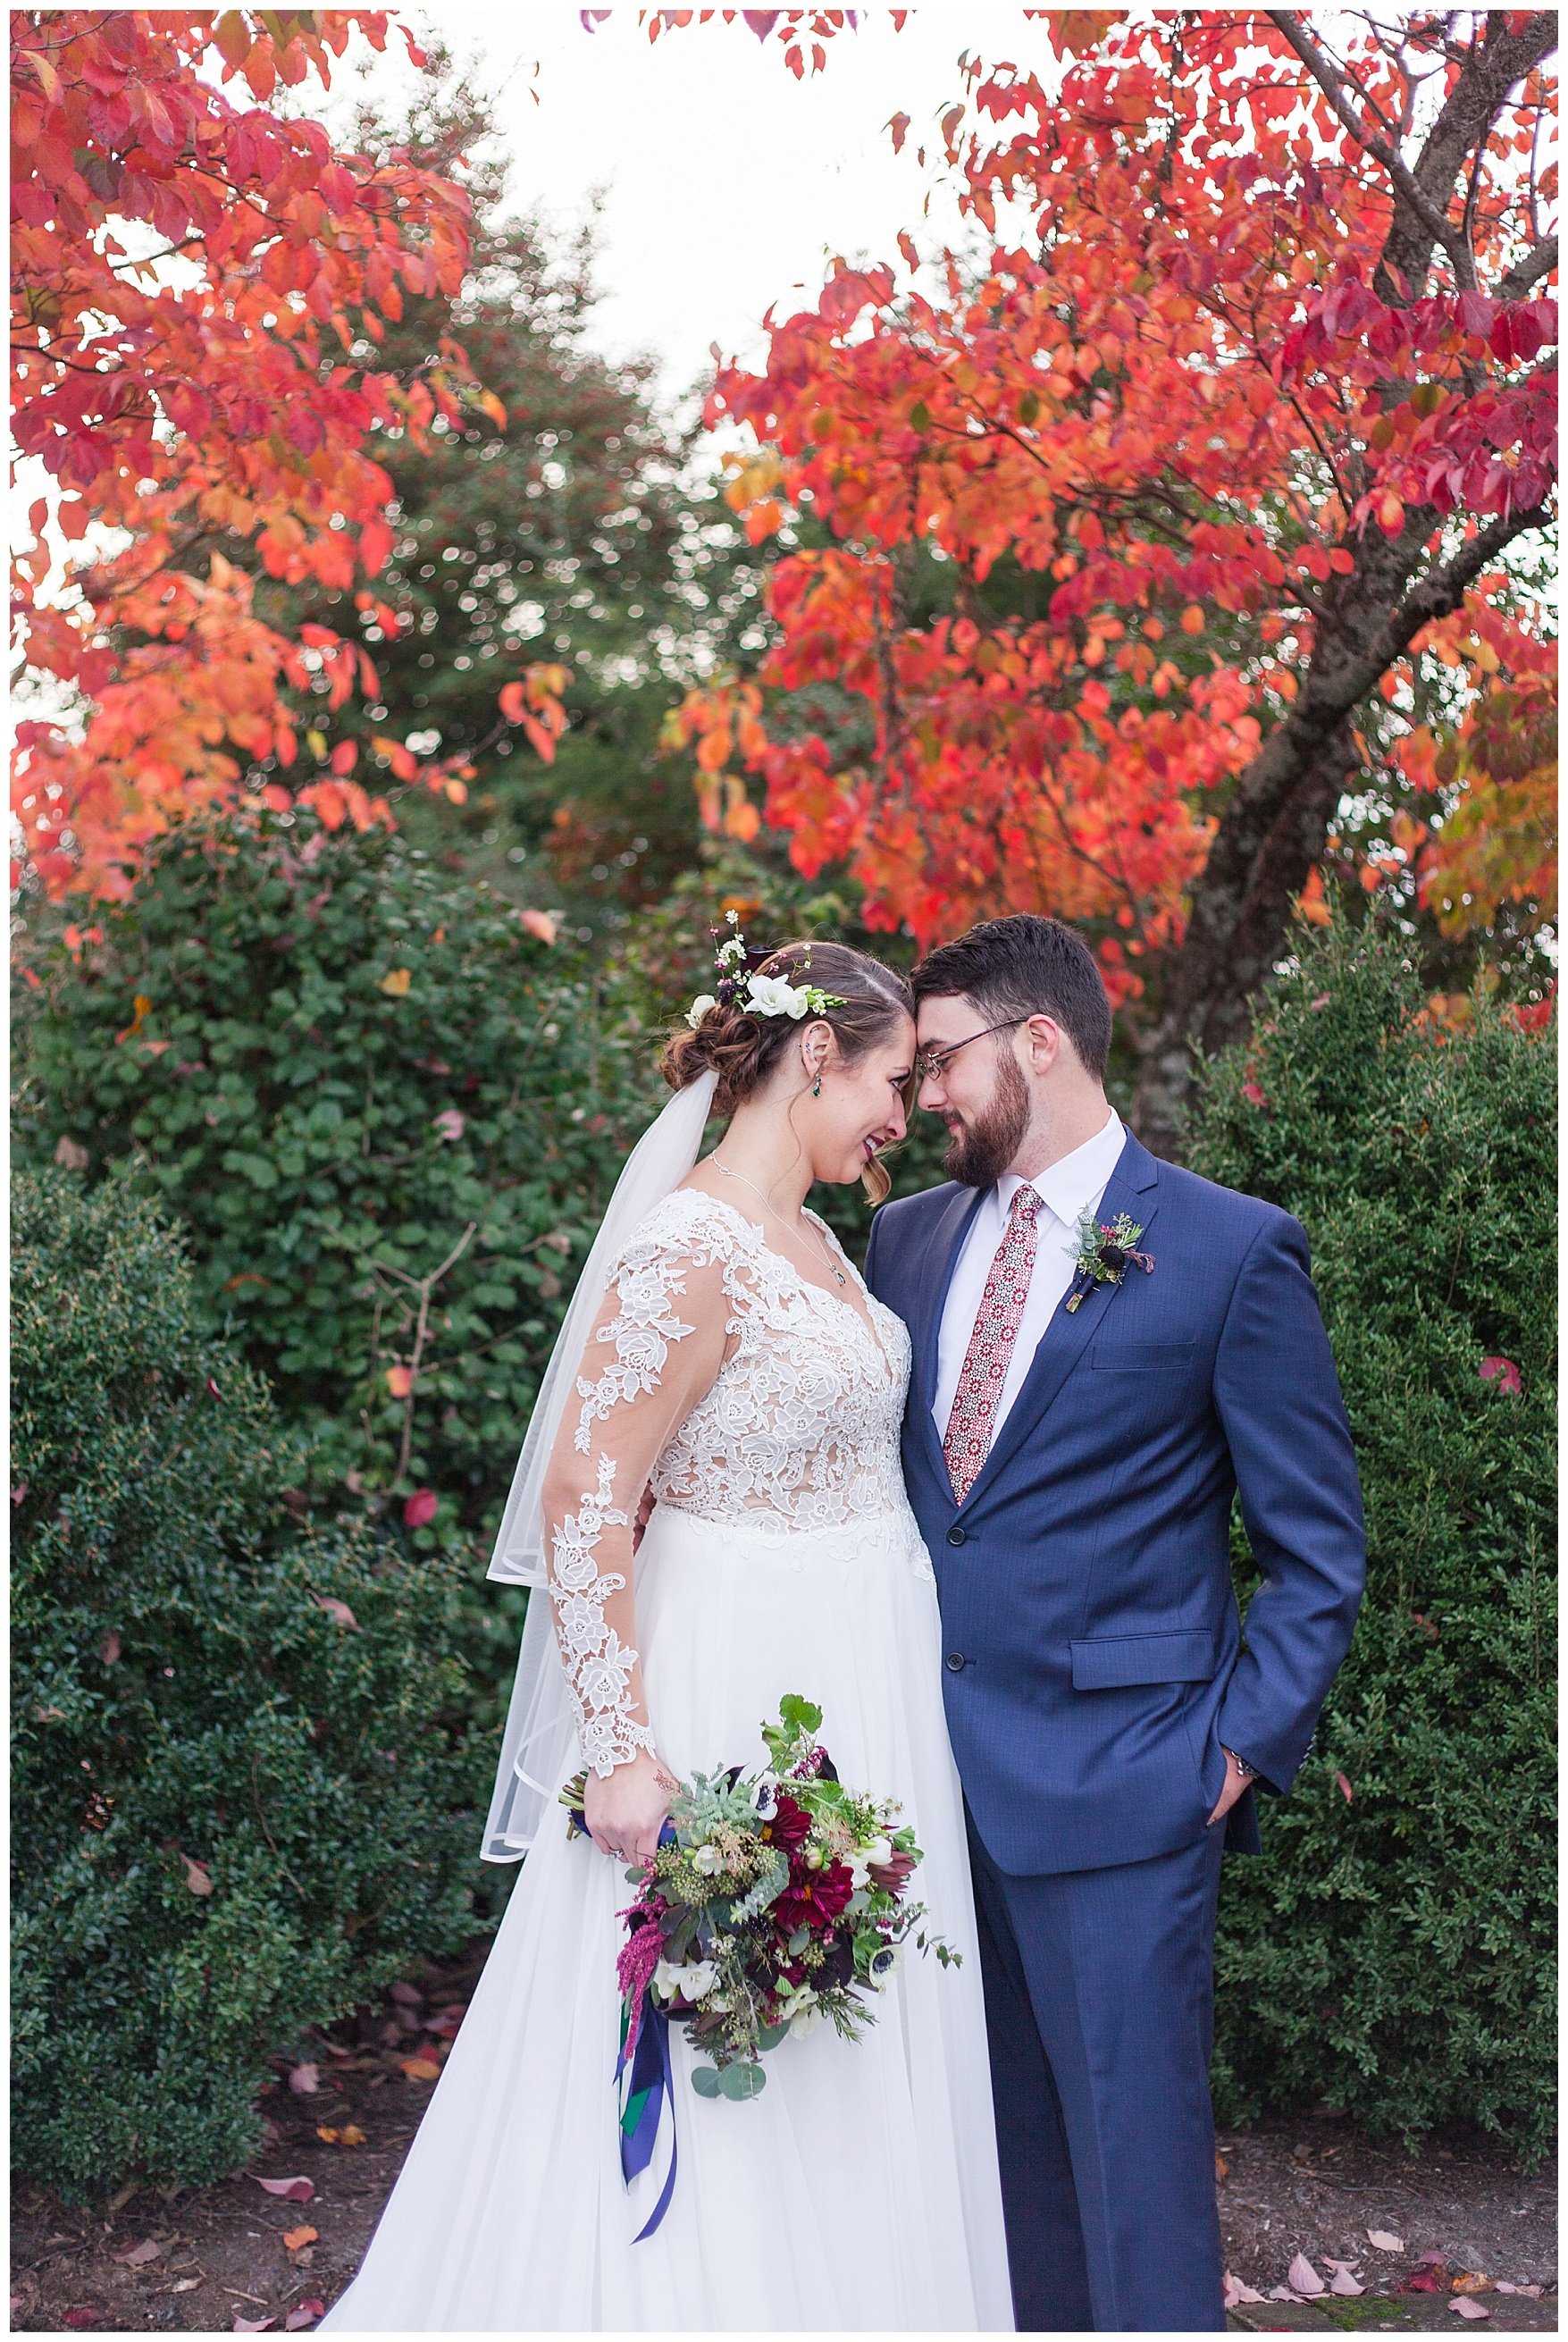 Lynchburg and Charlottesville Wedding Photographer || Fall Wedding at The Trivium Estate in Forest, Virginia || www.ashleyeiban.com